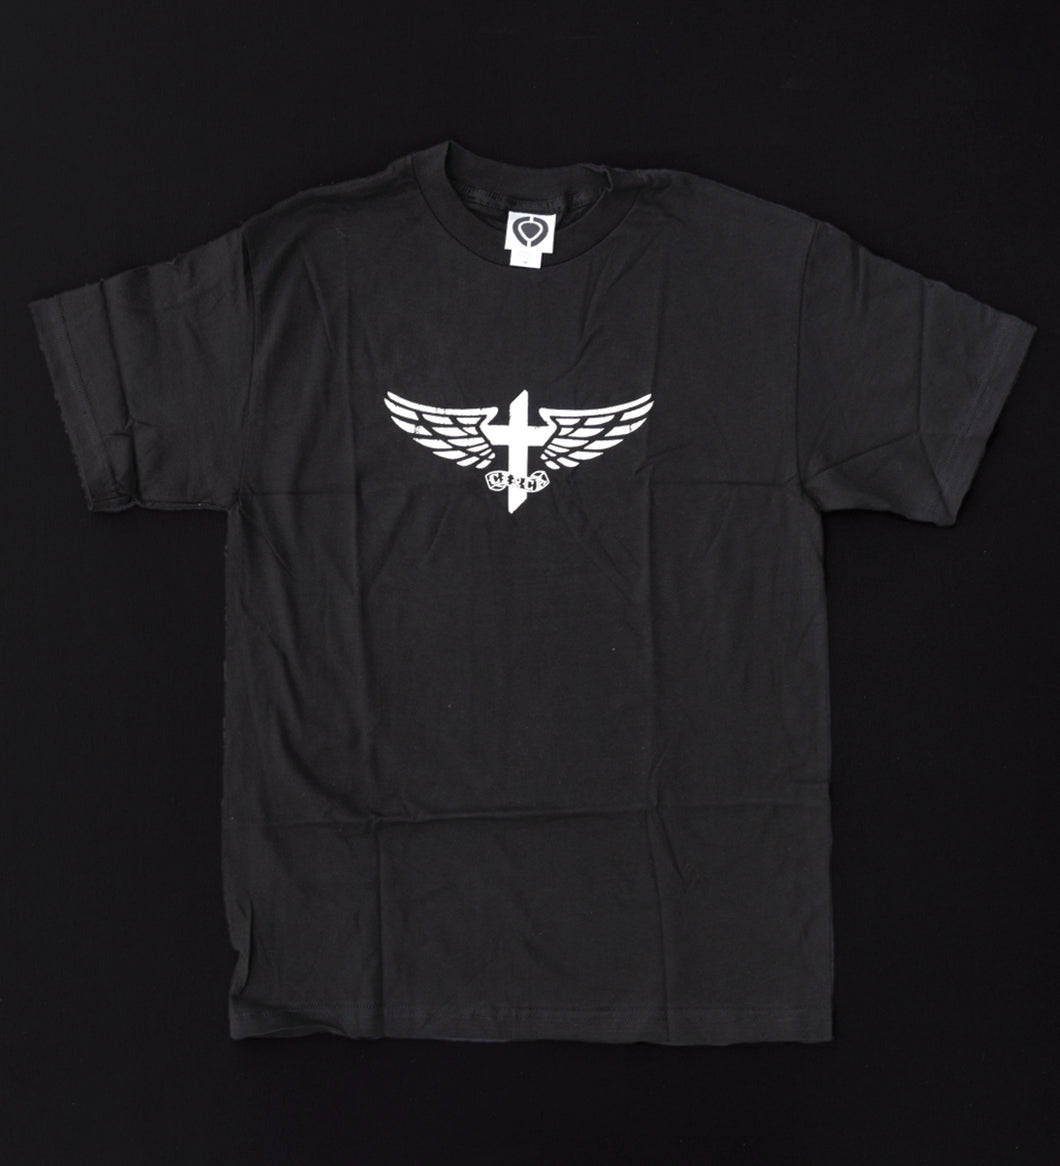 THOMAS 'CROSS & WINGS' T-SHIRT (BLK)